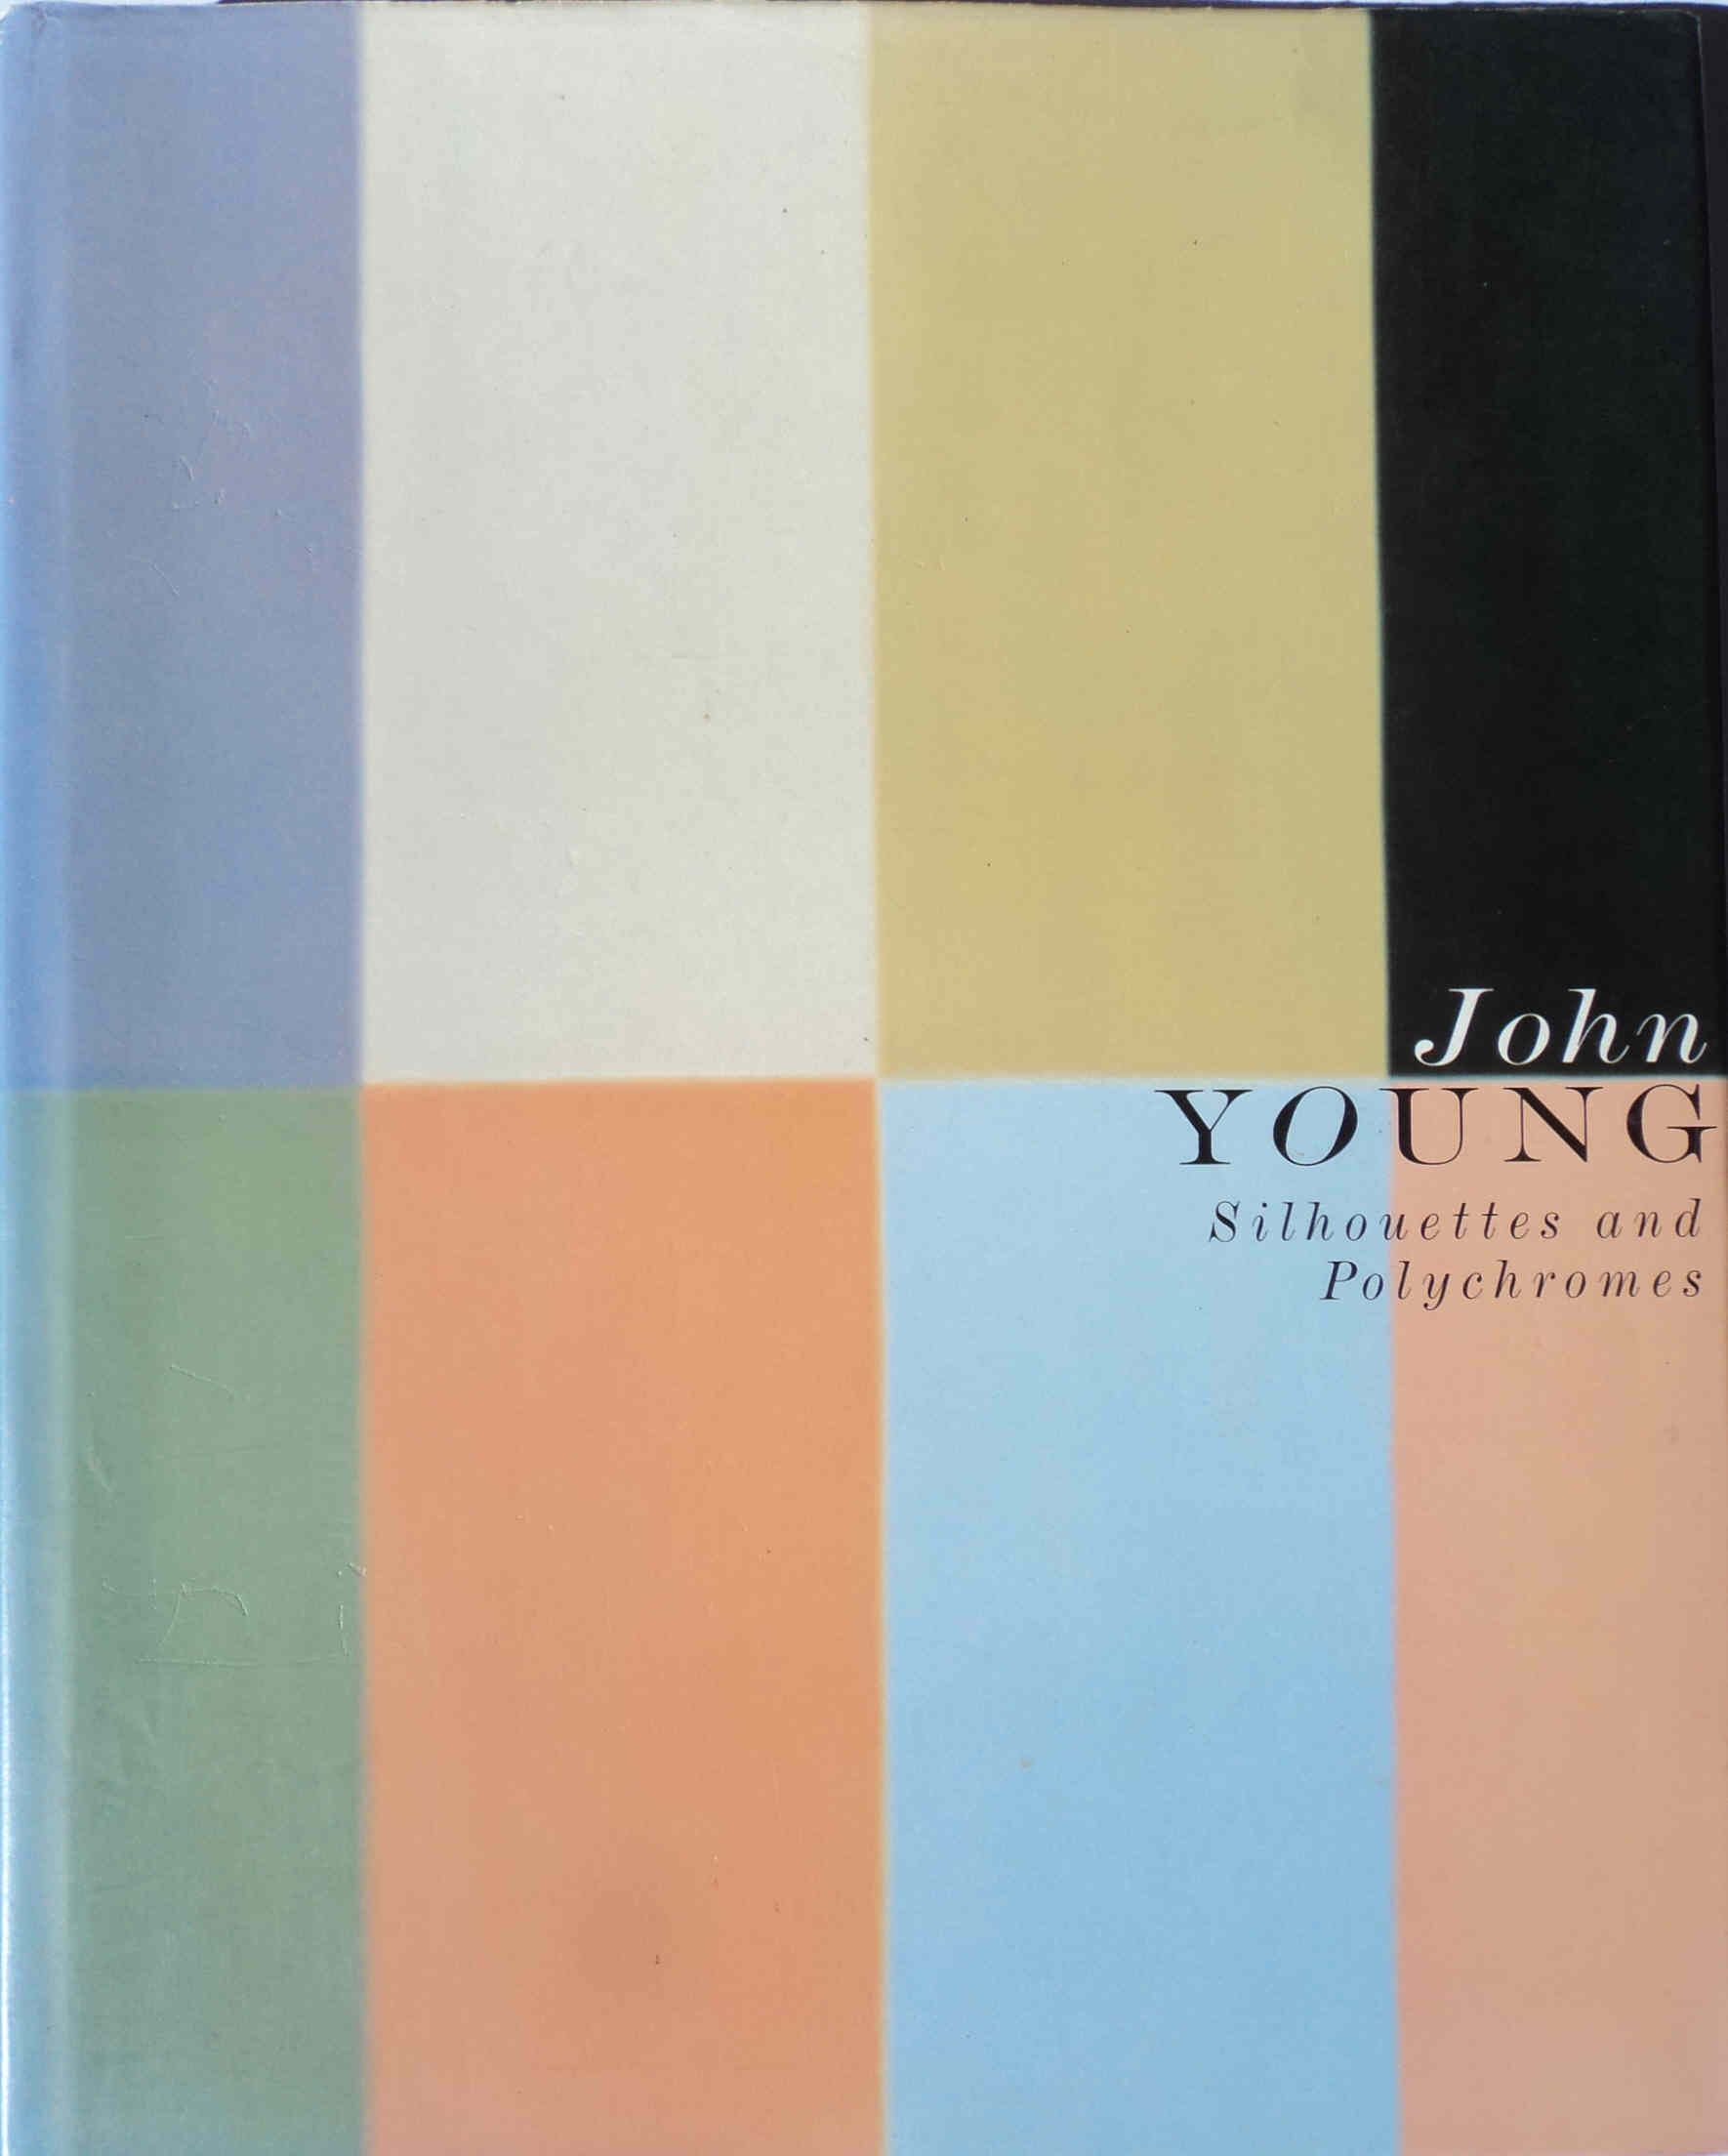 YOUNG, JOHN - Silhouettes and Polychromes